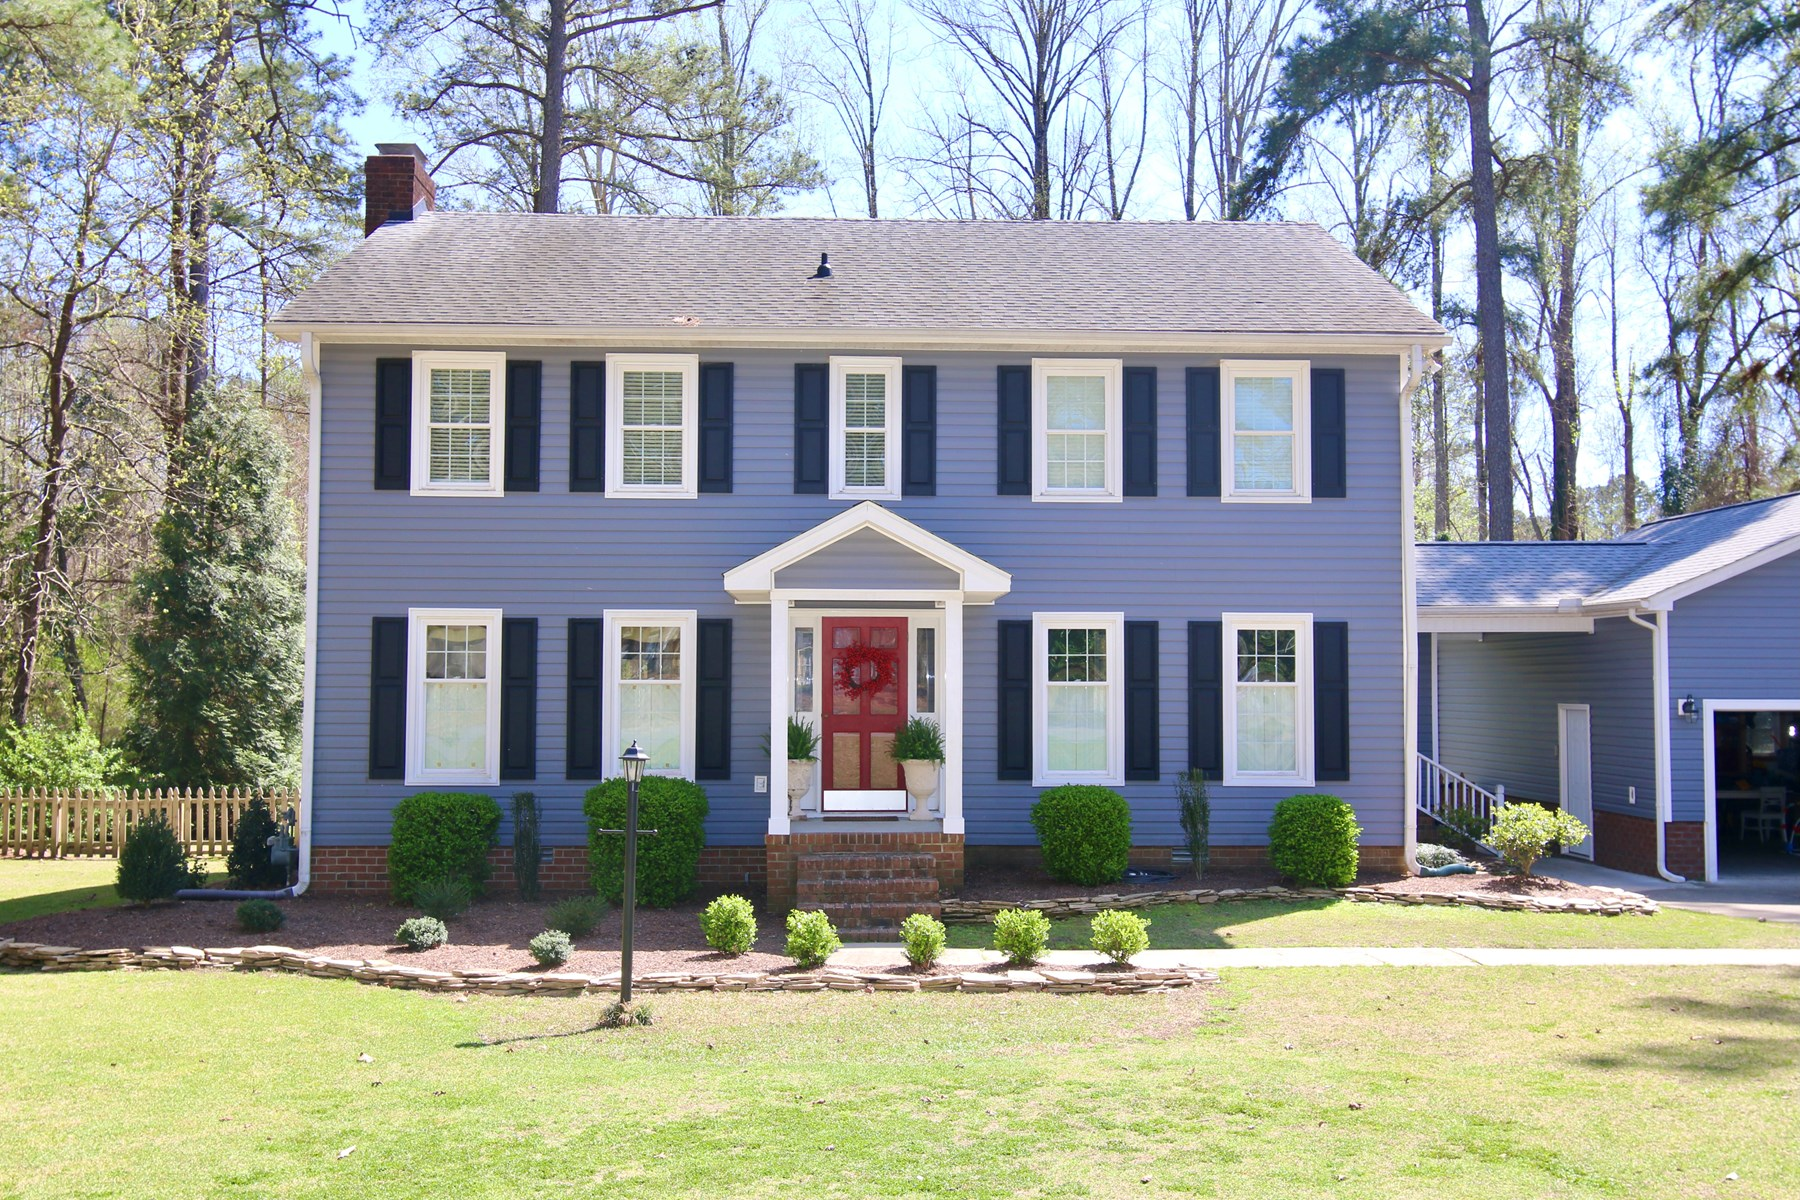 Home in town for sale in Beaufort County, NC